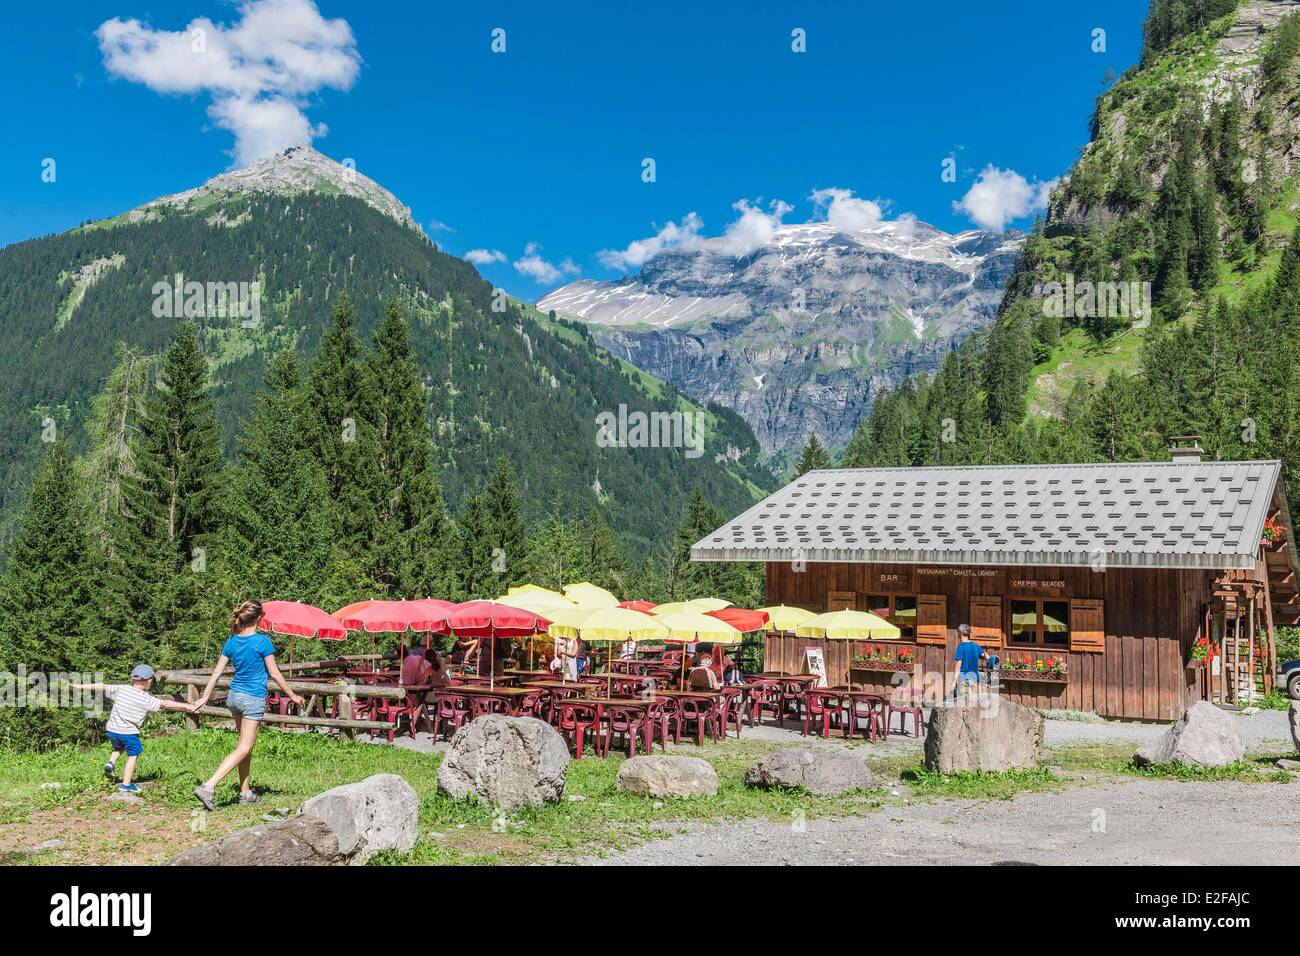 France, Haute-Savoie, Giffre valley, Lignon chalet, starting point of the hiking to the pass Anterne - Stock Image